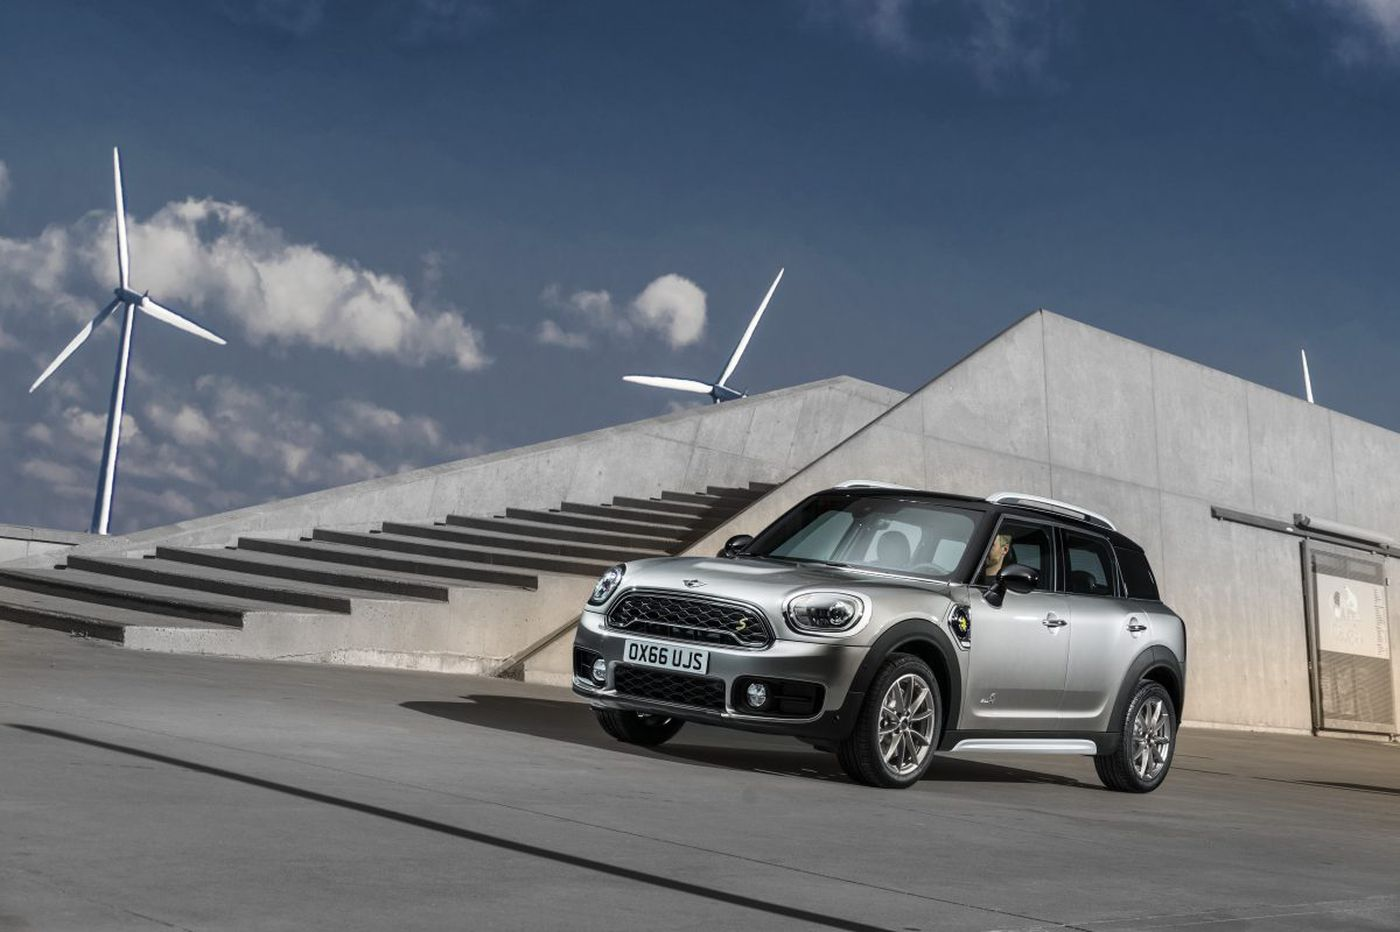 Countryman hybrid is not about the fuel savings